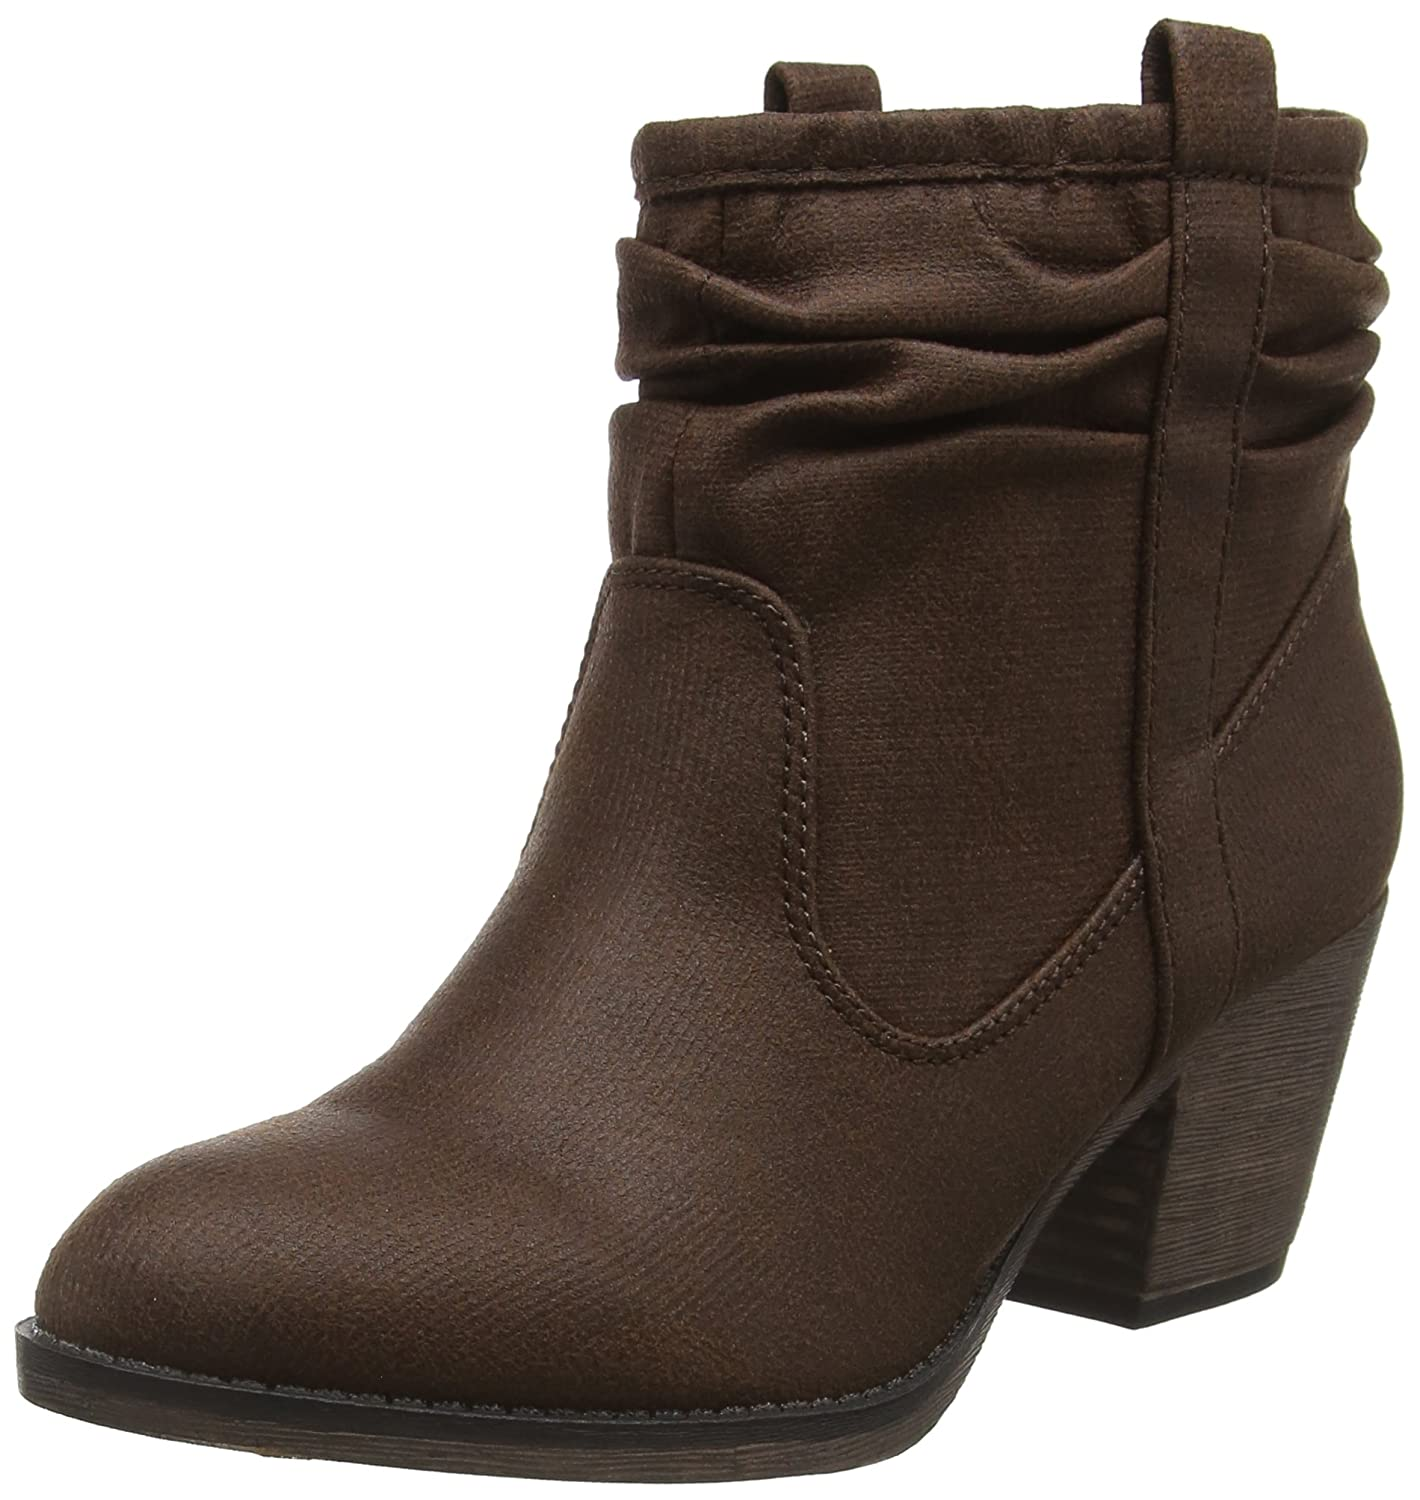 Rocket Dog Scouting, Botines para Mujer40 EU|Marrón - Brown (Rouge Brown)